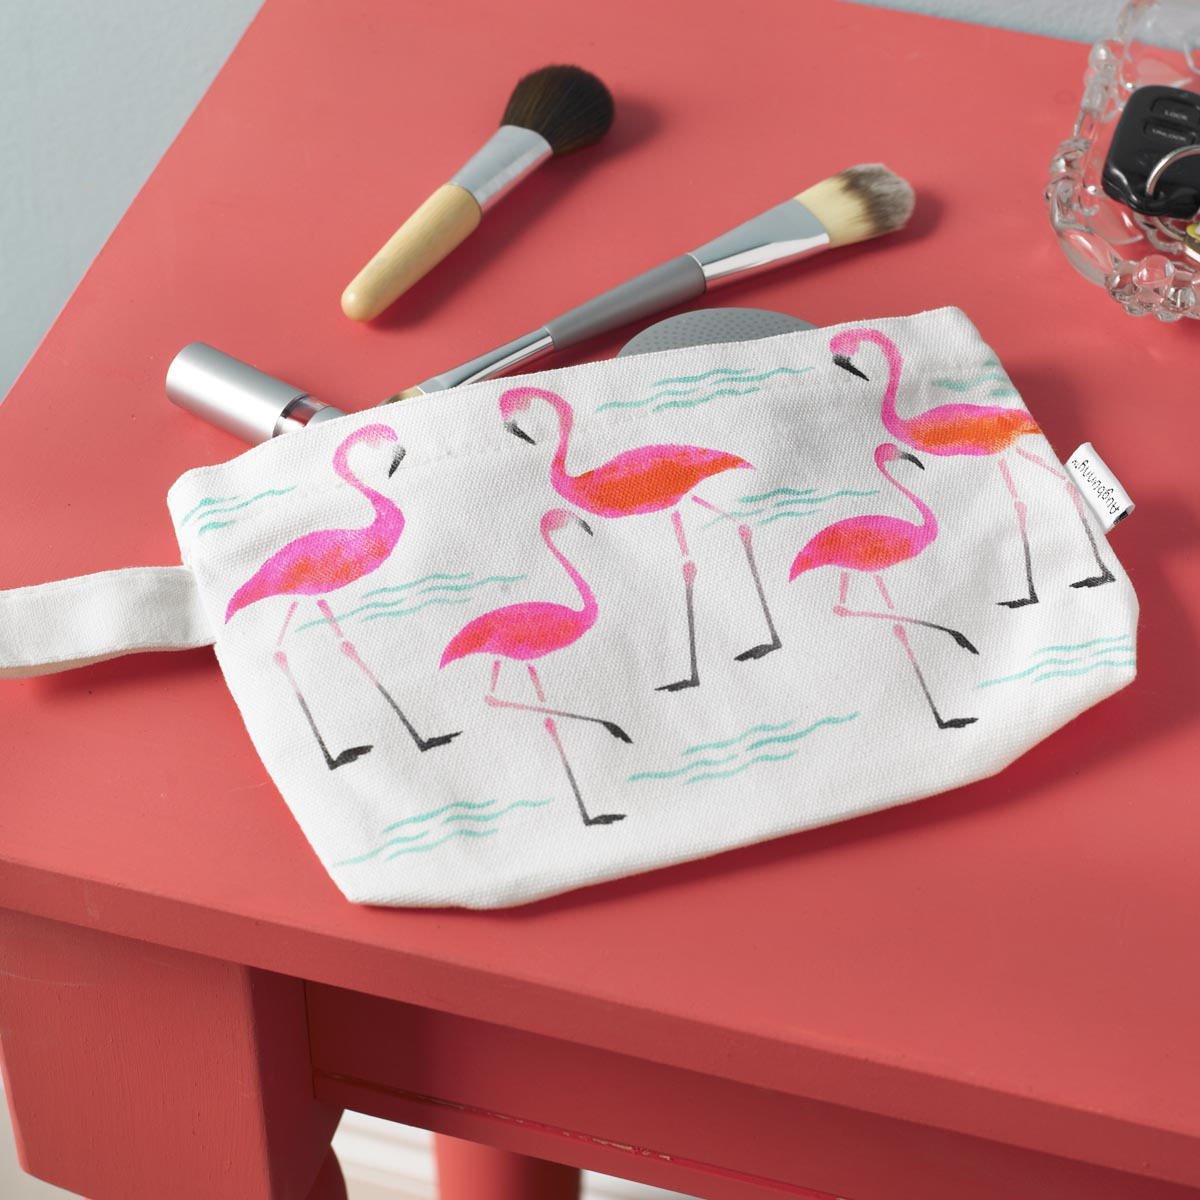 FolkArt ® Painting Stencils - Small - Flamingo - 13225